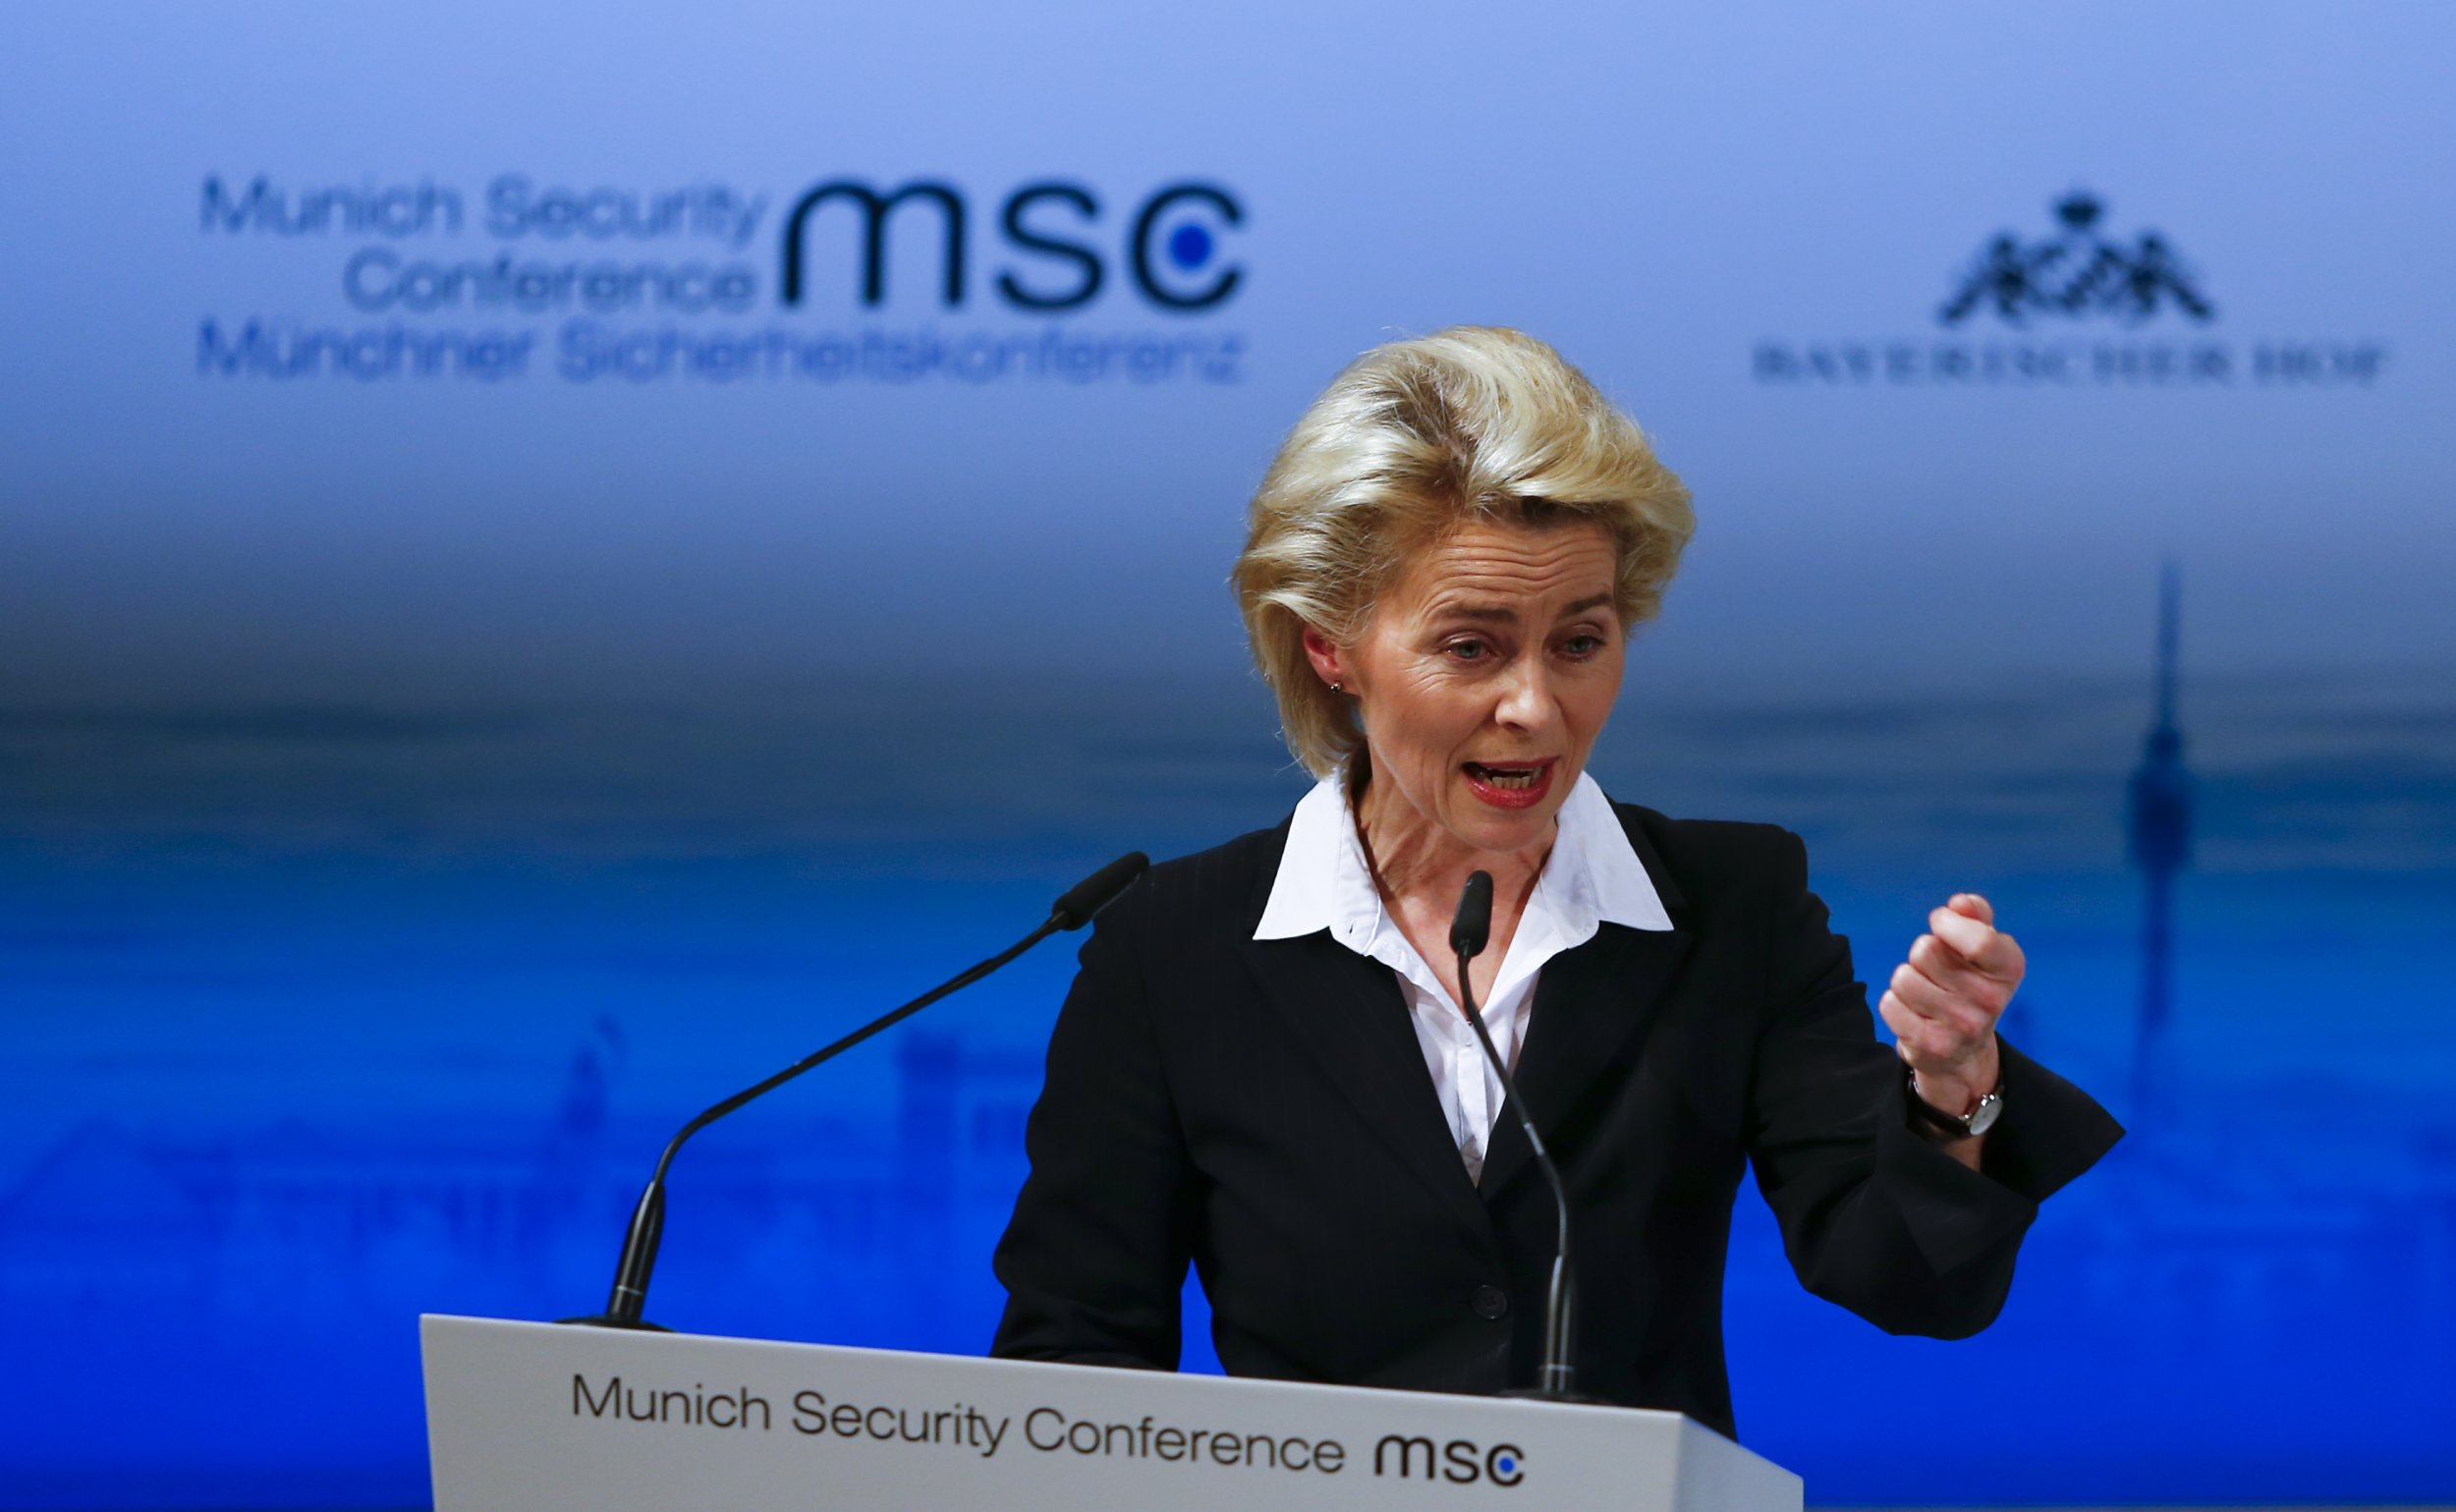 02_12_munich_security_conference_01